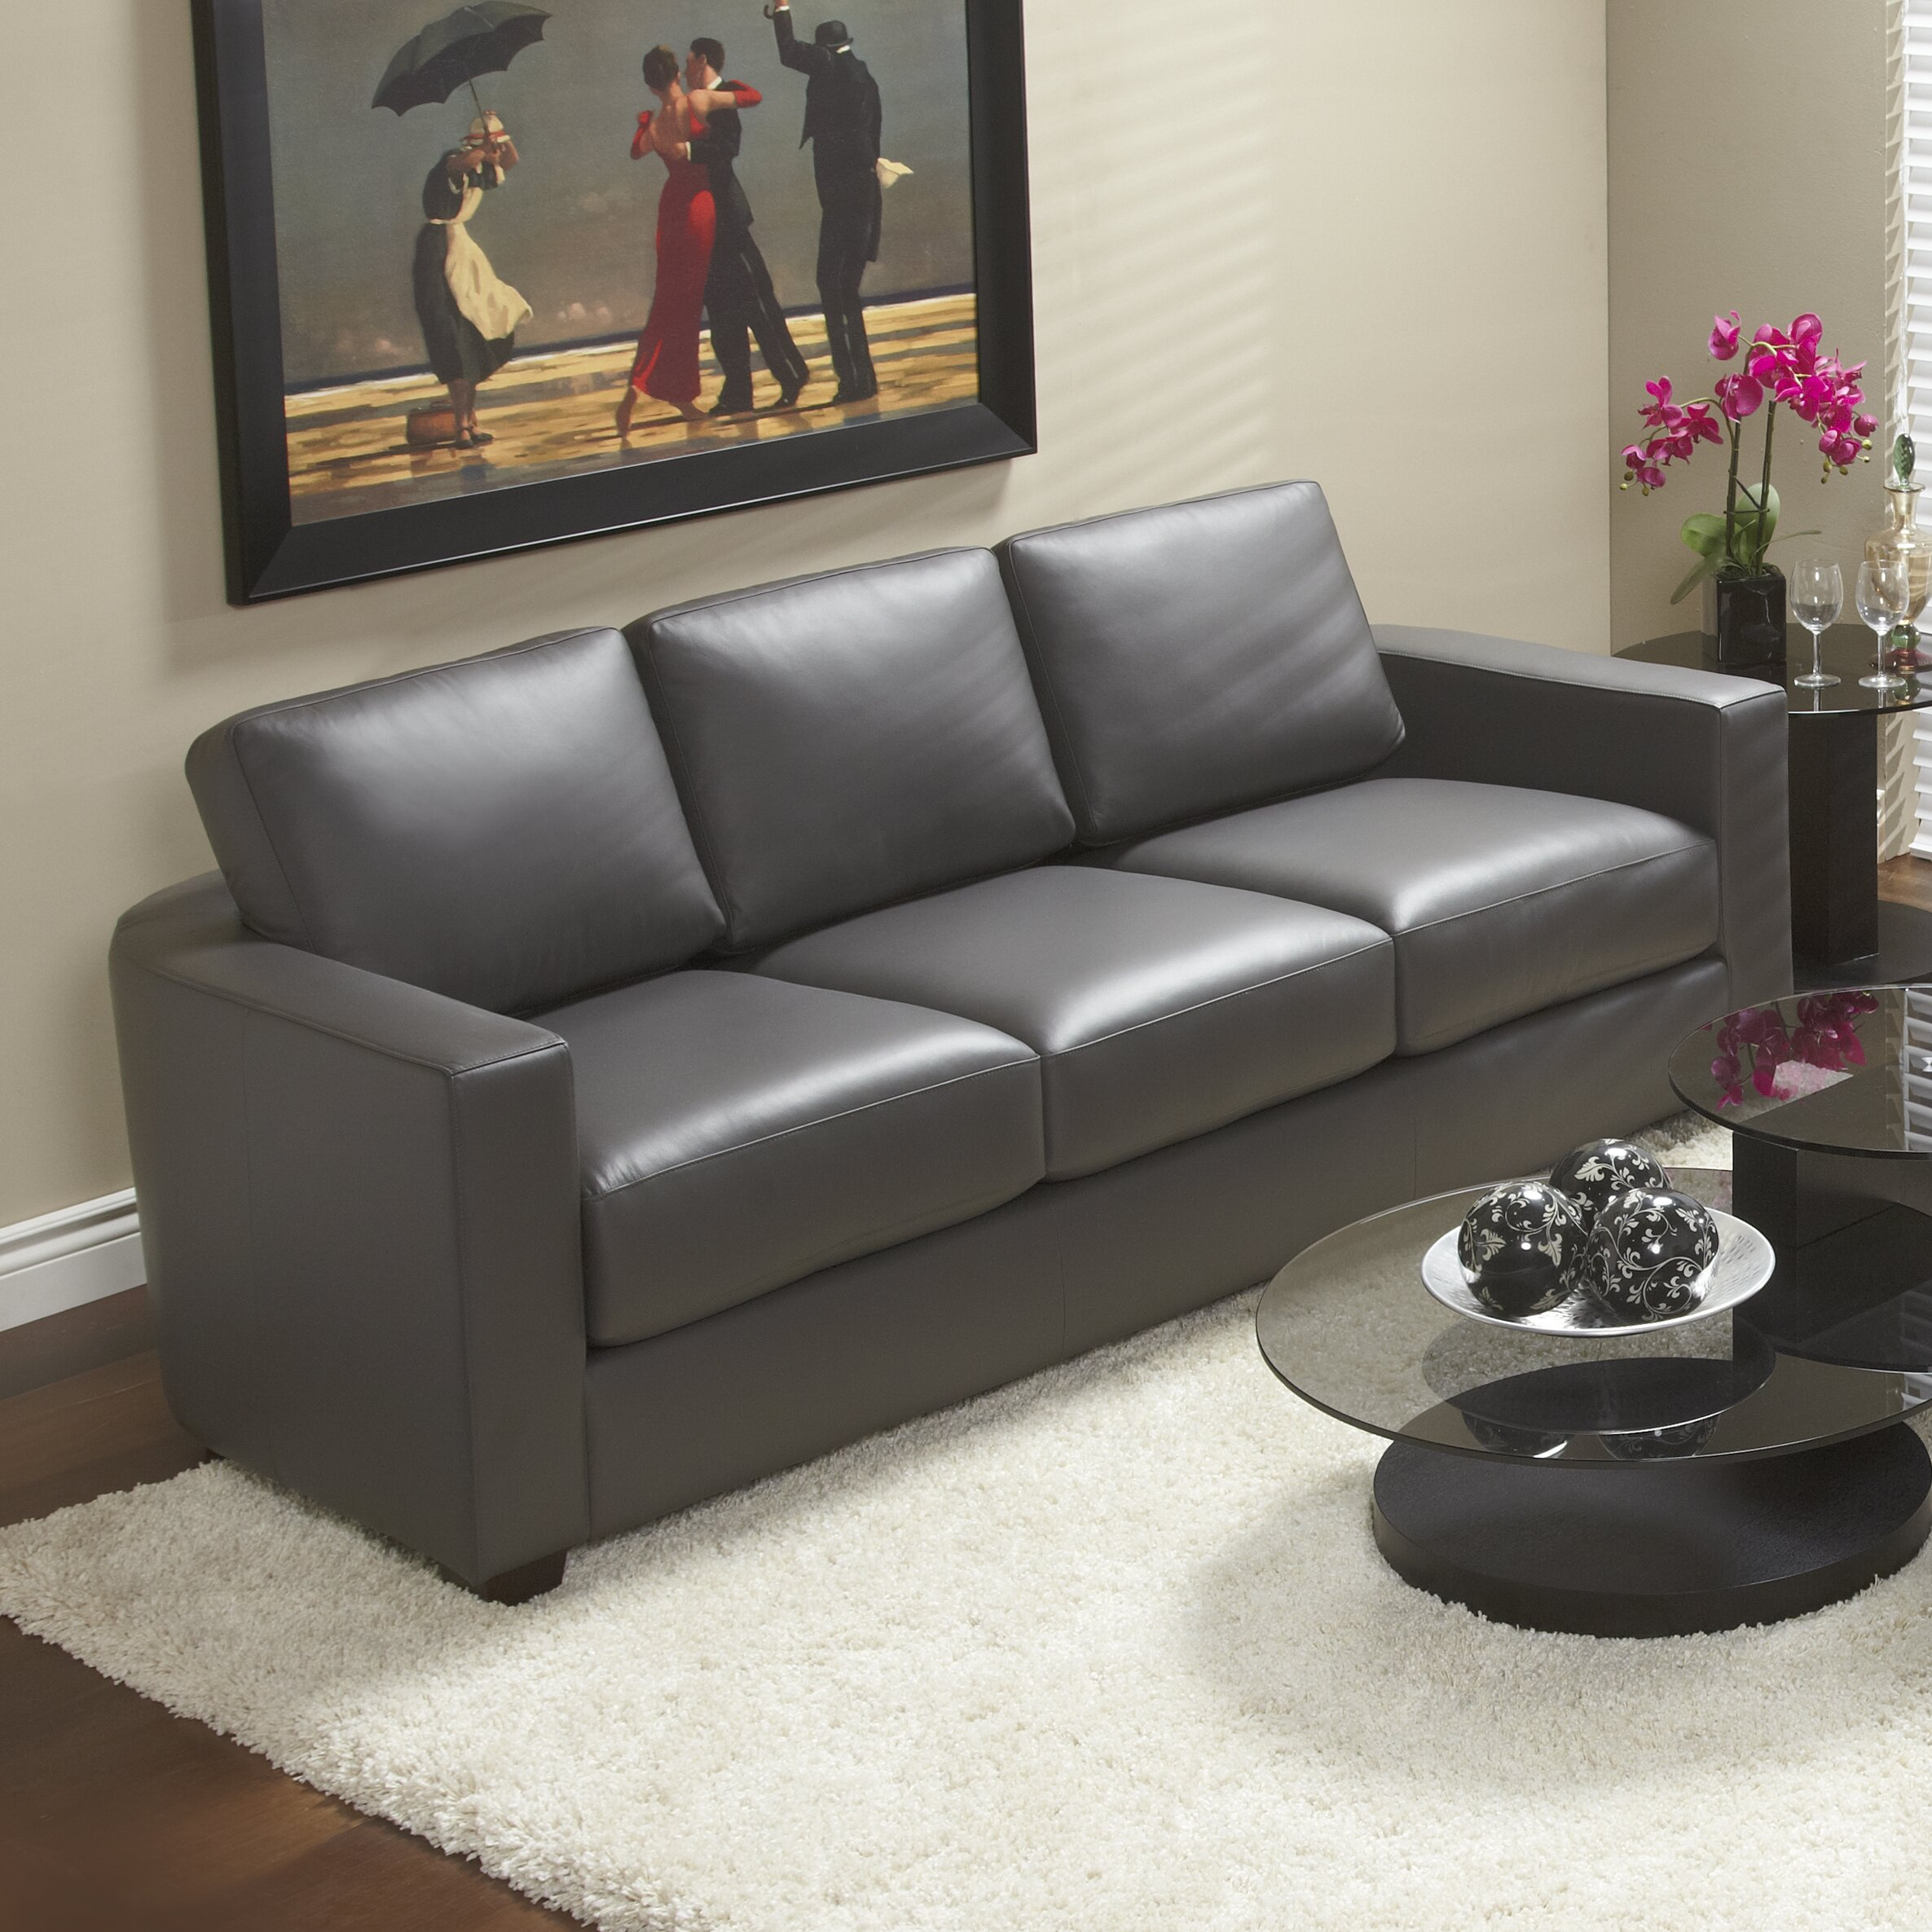 Top Grain Leather Living Room Set Lind Furniture Marquis Top Grain Leather Sofa Wayfair